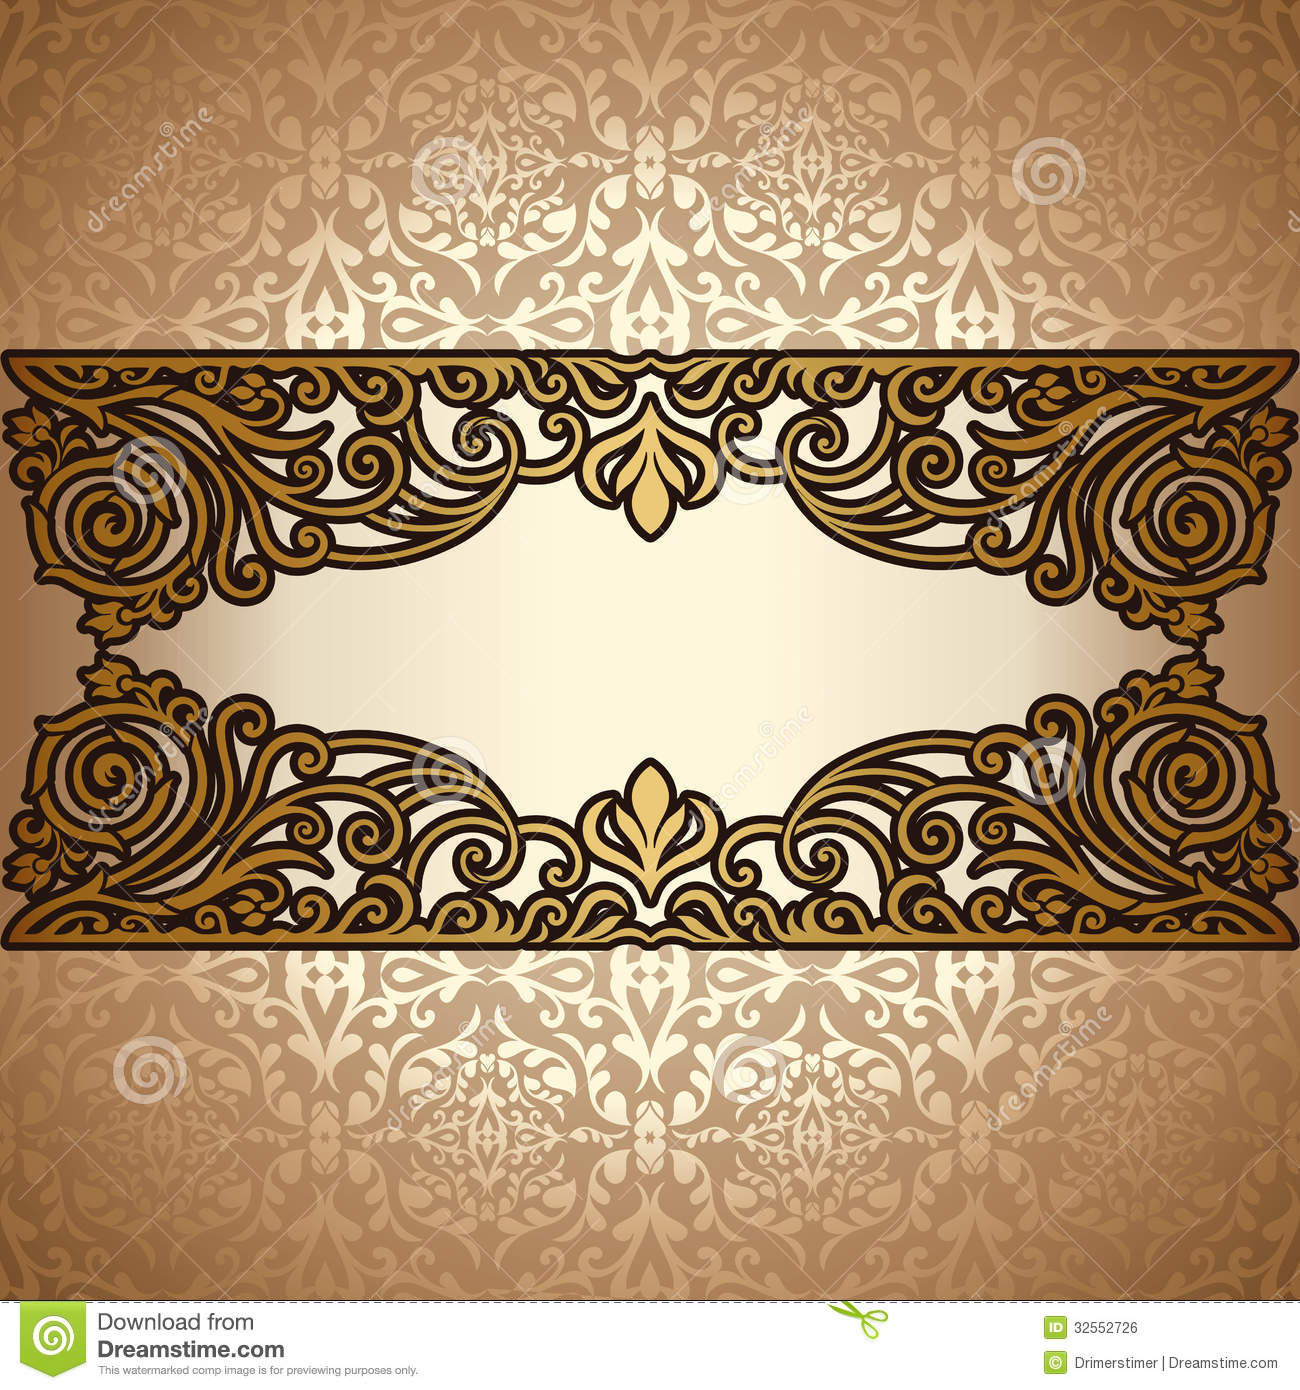 Background Design Stock Images Royalty Free Images